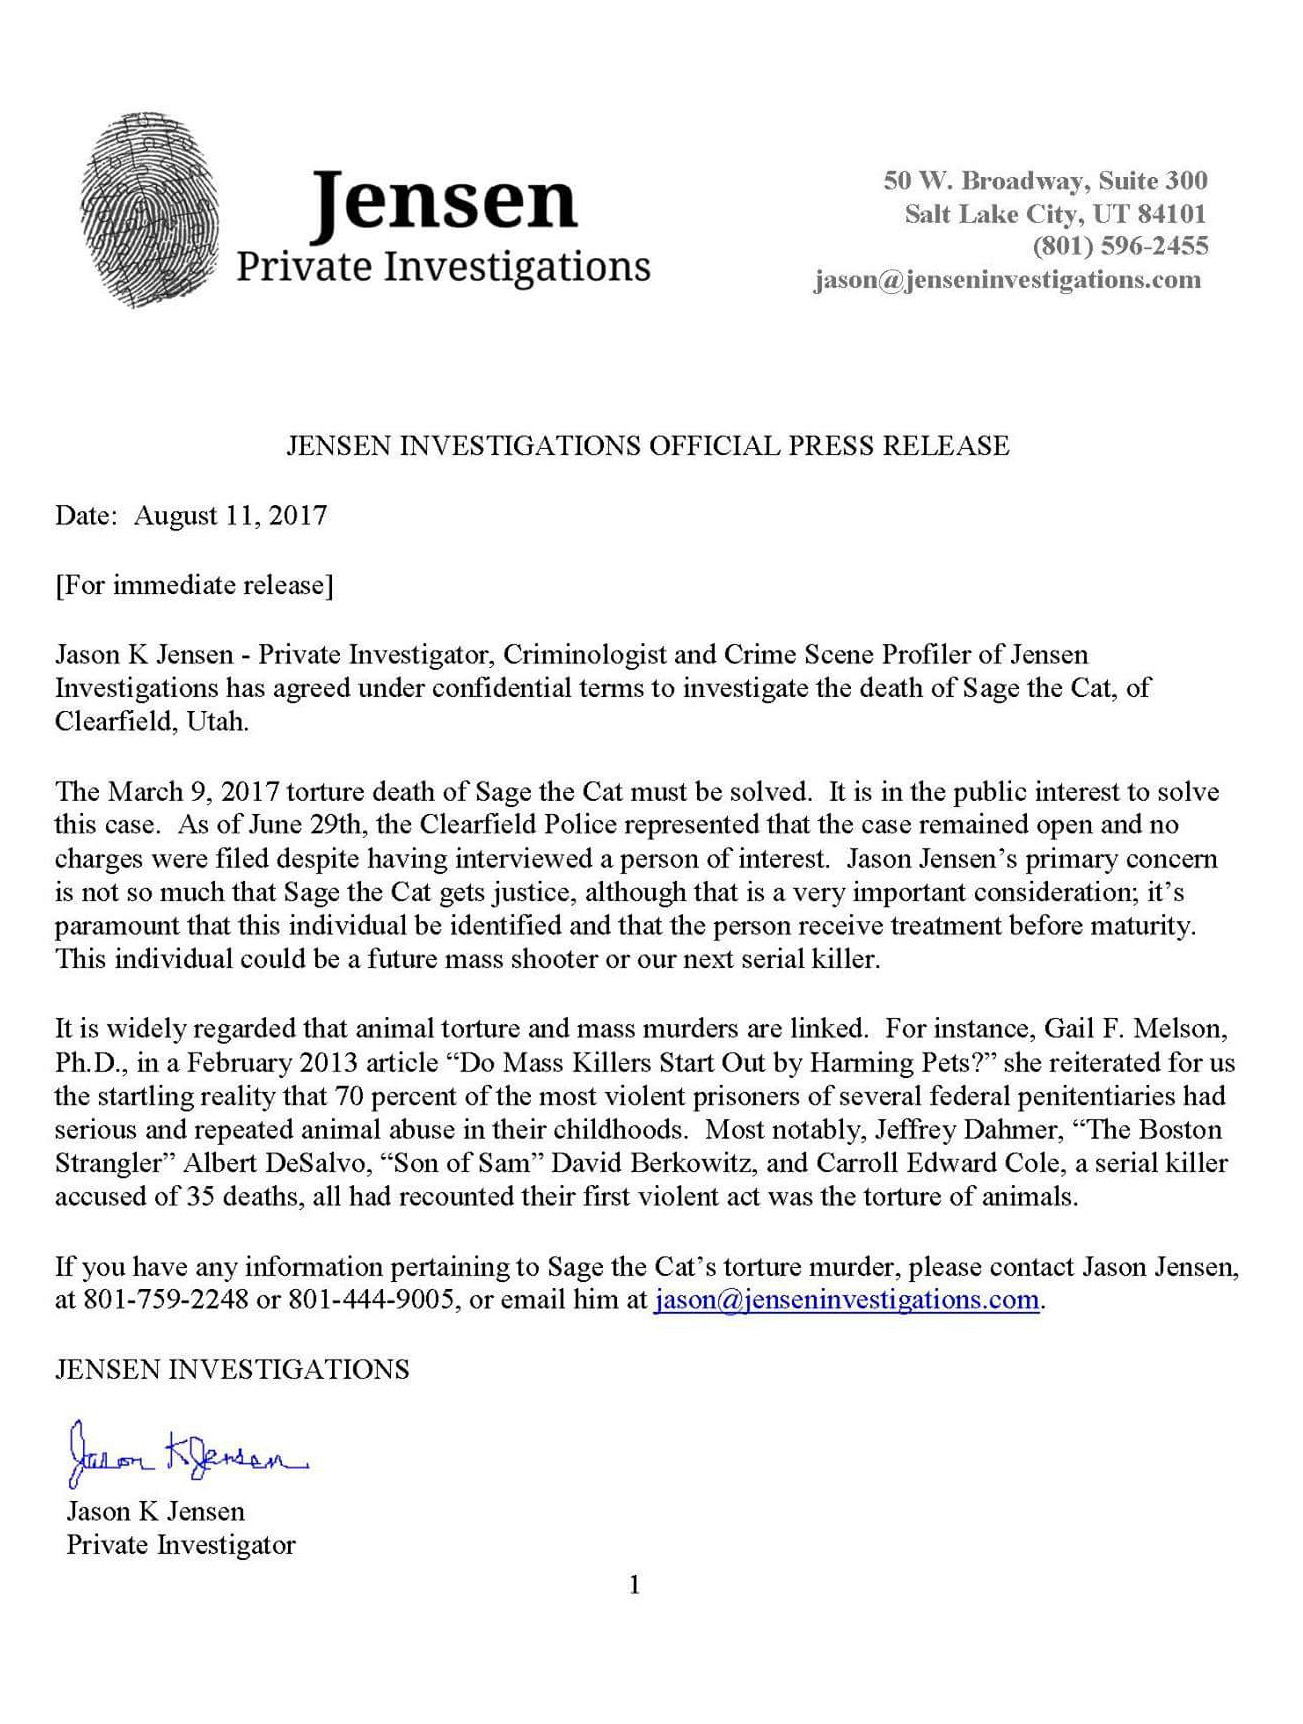 Private investigator's press release declaring his involvement in the investigation of Sage's torture